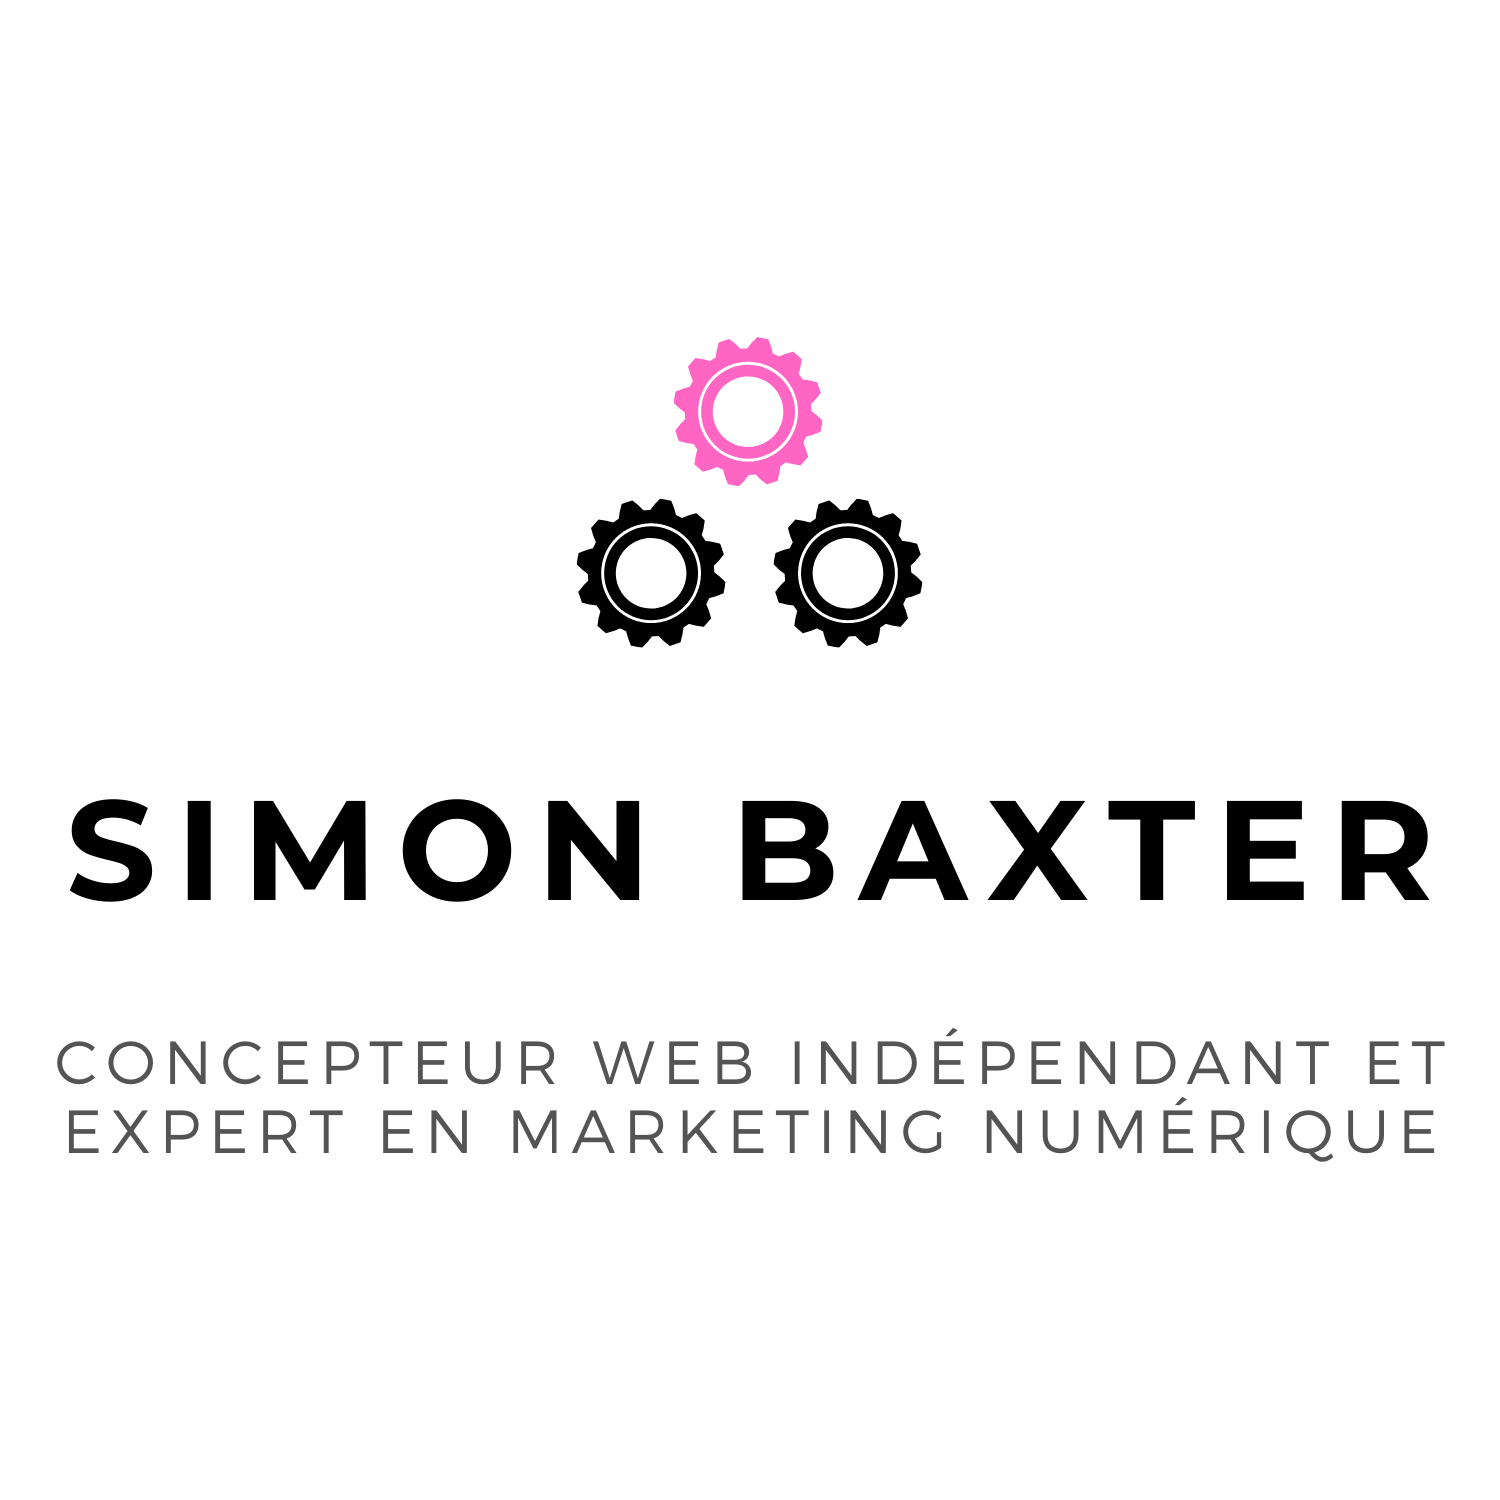 Simon Baxter Website Design & Digital Marketing Advice